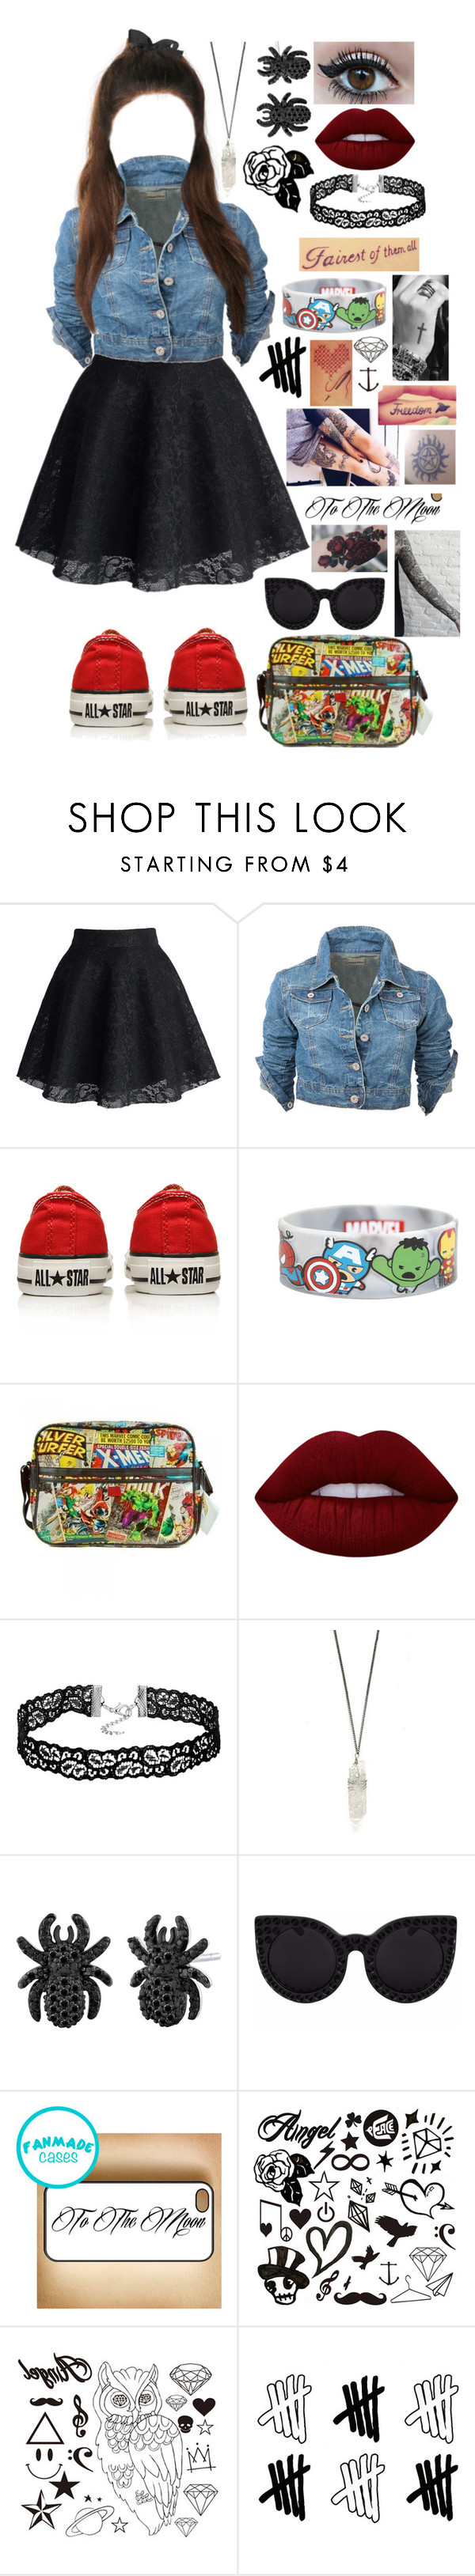 """""""Untitled #541"""" by skh-siera18 ❤ liked on Polyvore featuring Chicwish, Converse, Retrò, Lime Crime, Delalle, Disney and Samsung"""